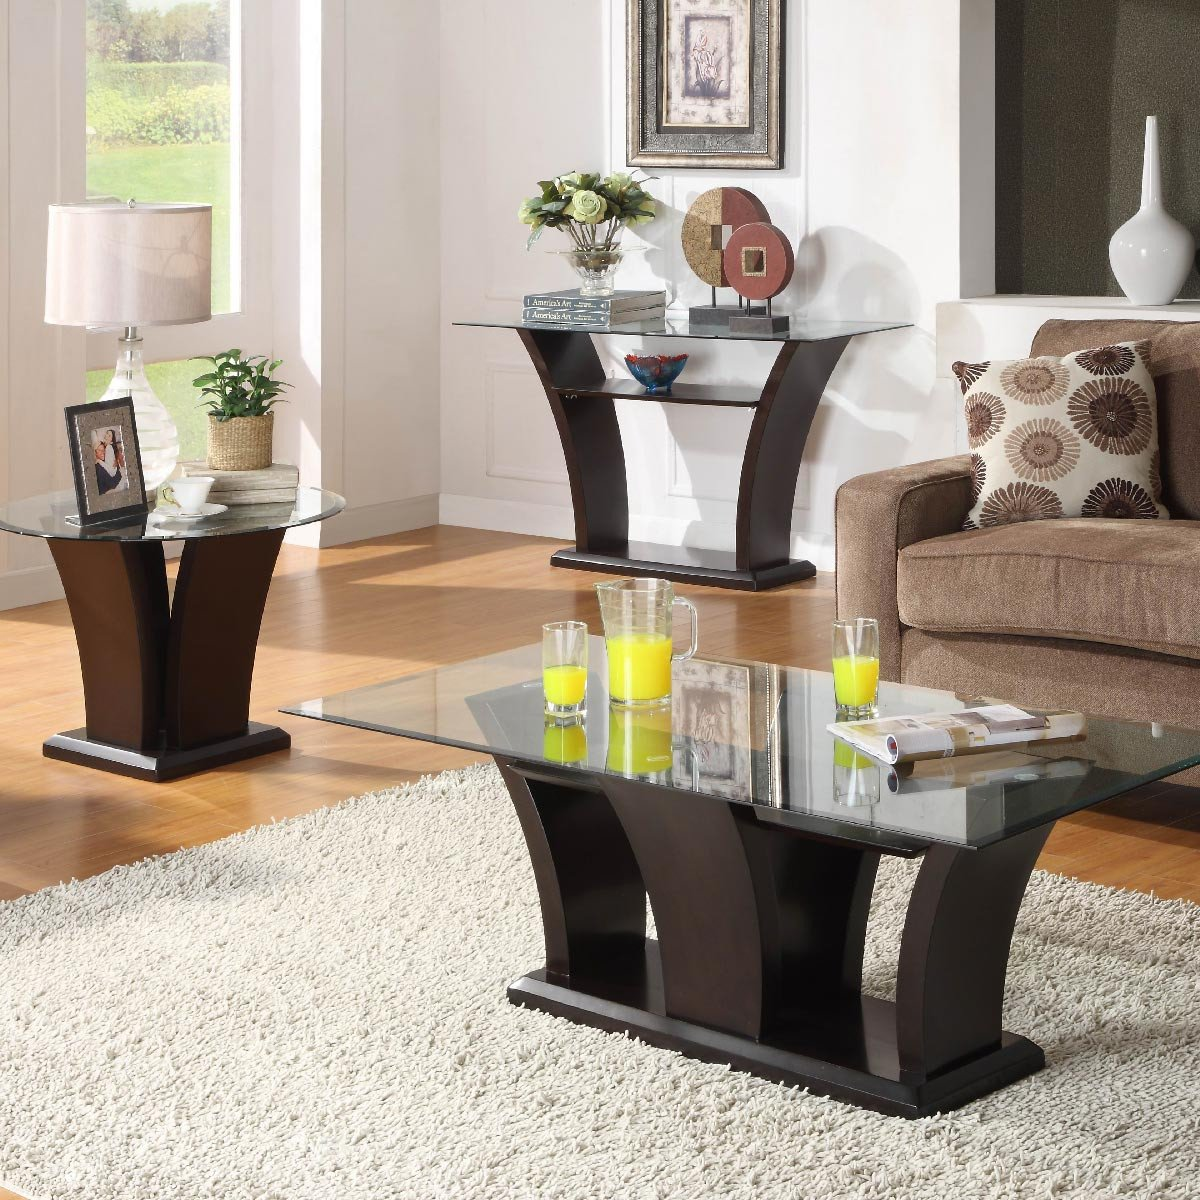 Decor for Living Room Tables Glass sofa Table for A Great Living Room Decor Ideas